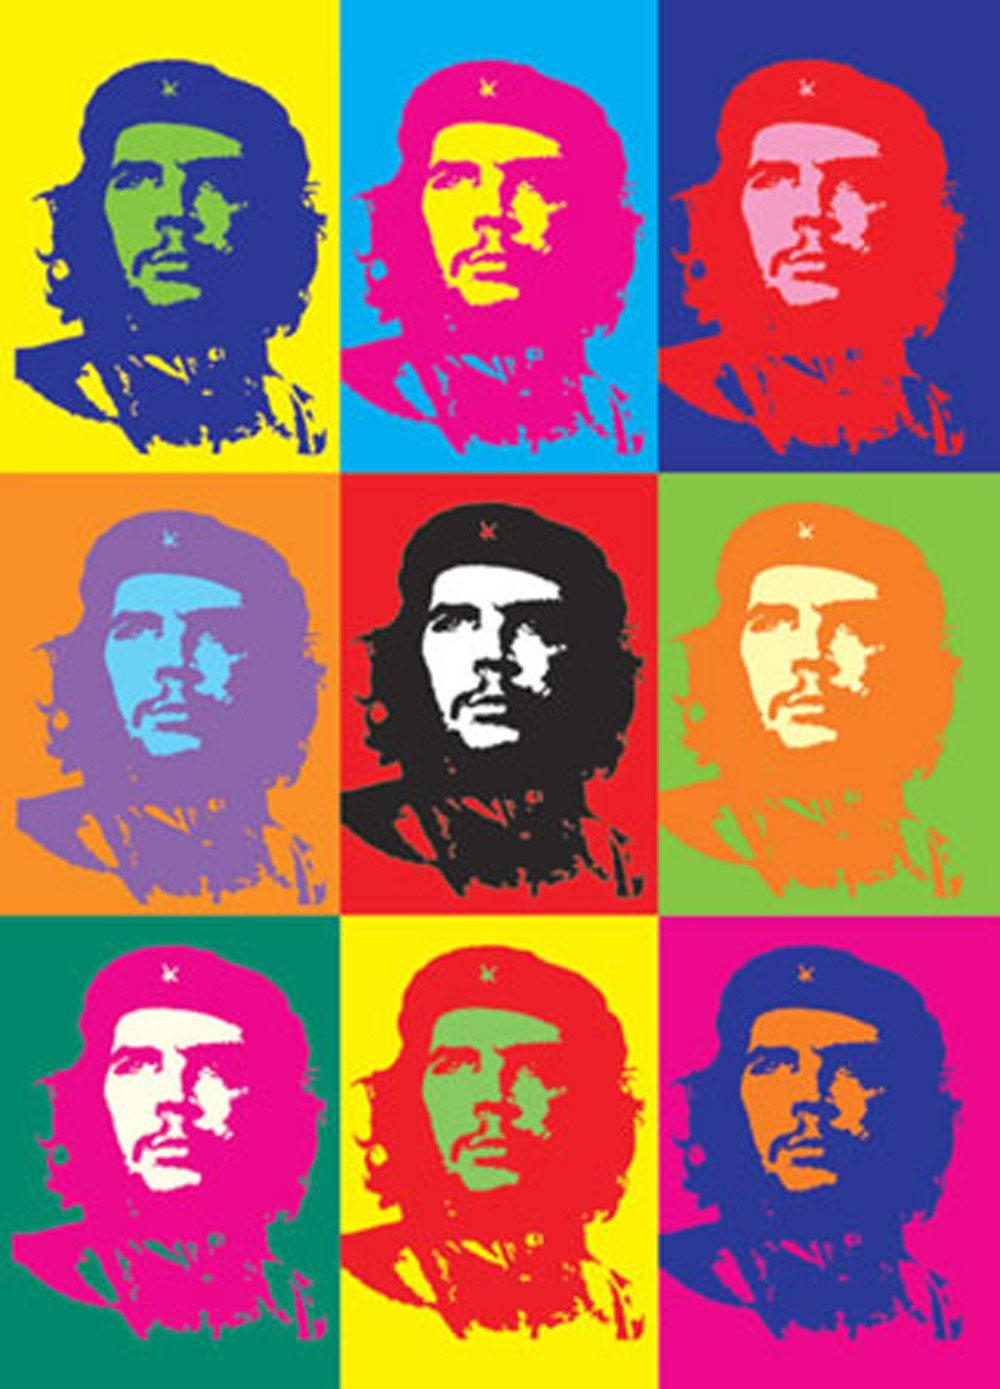 maxi poster che guevara pop art 61 x 1011 po7028 61cm x 24 x 36 inches. Black Bedroom Furniture Sets. Home Design Ideas